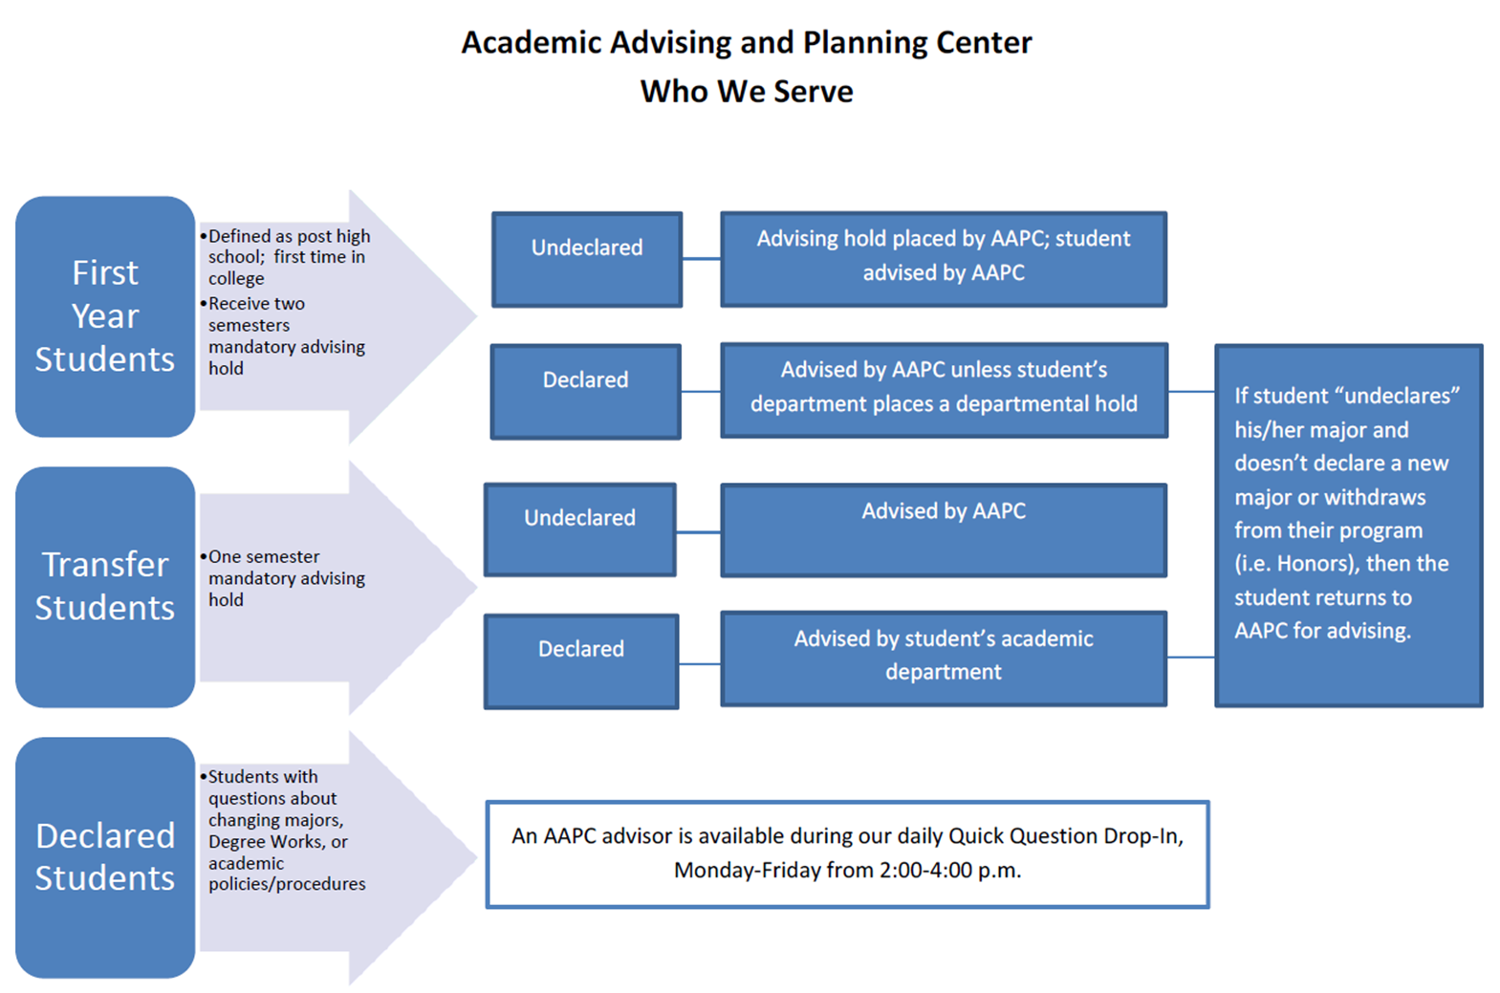 Academic Advising and Planning Center's Advising Model